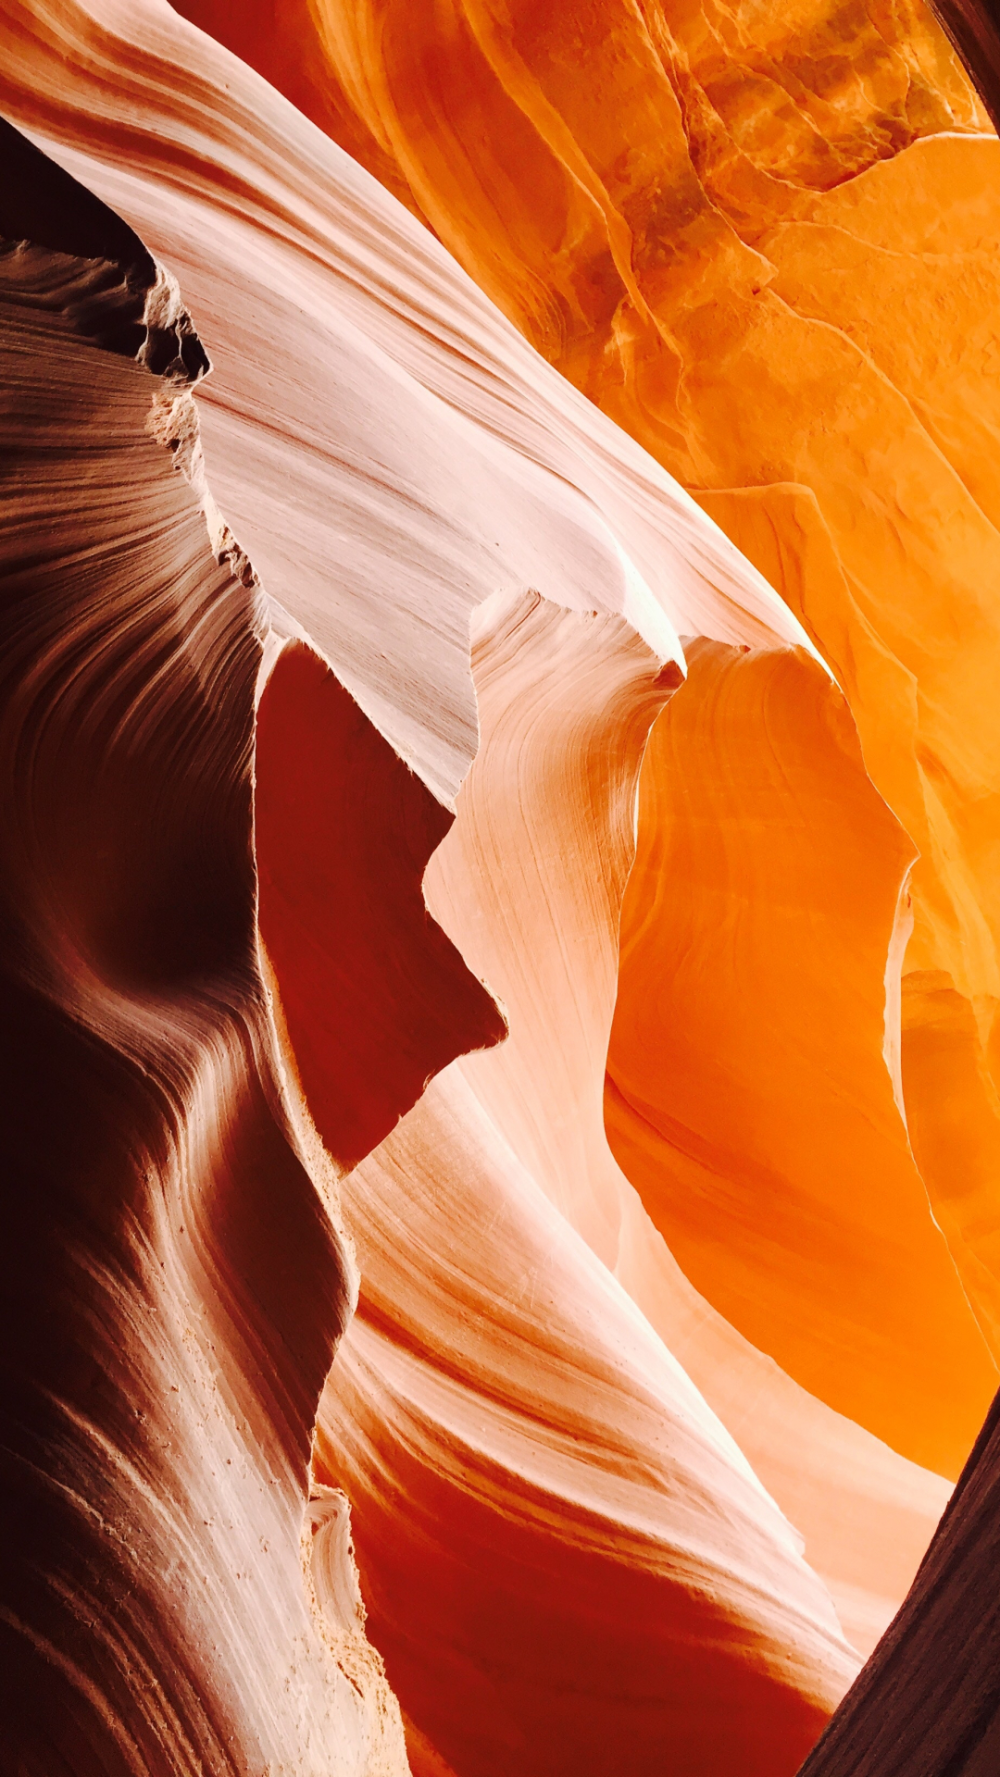 Cave, Redrock, iphone wallpapers Free background images